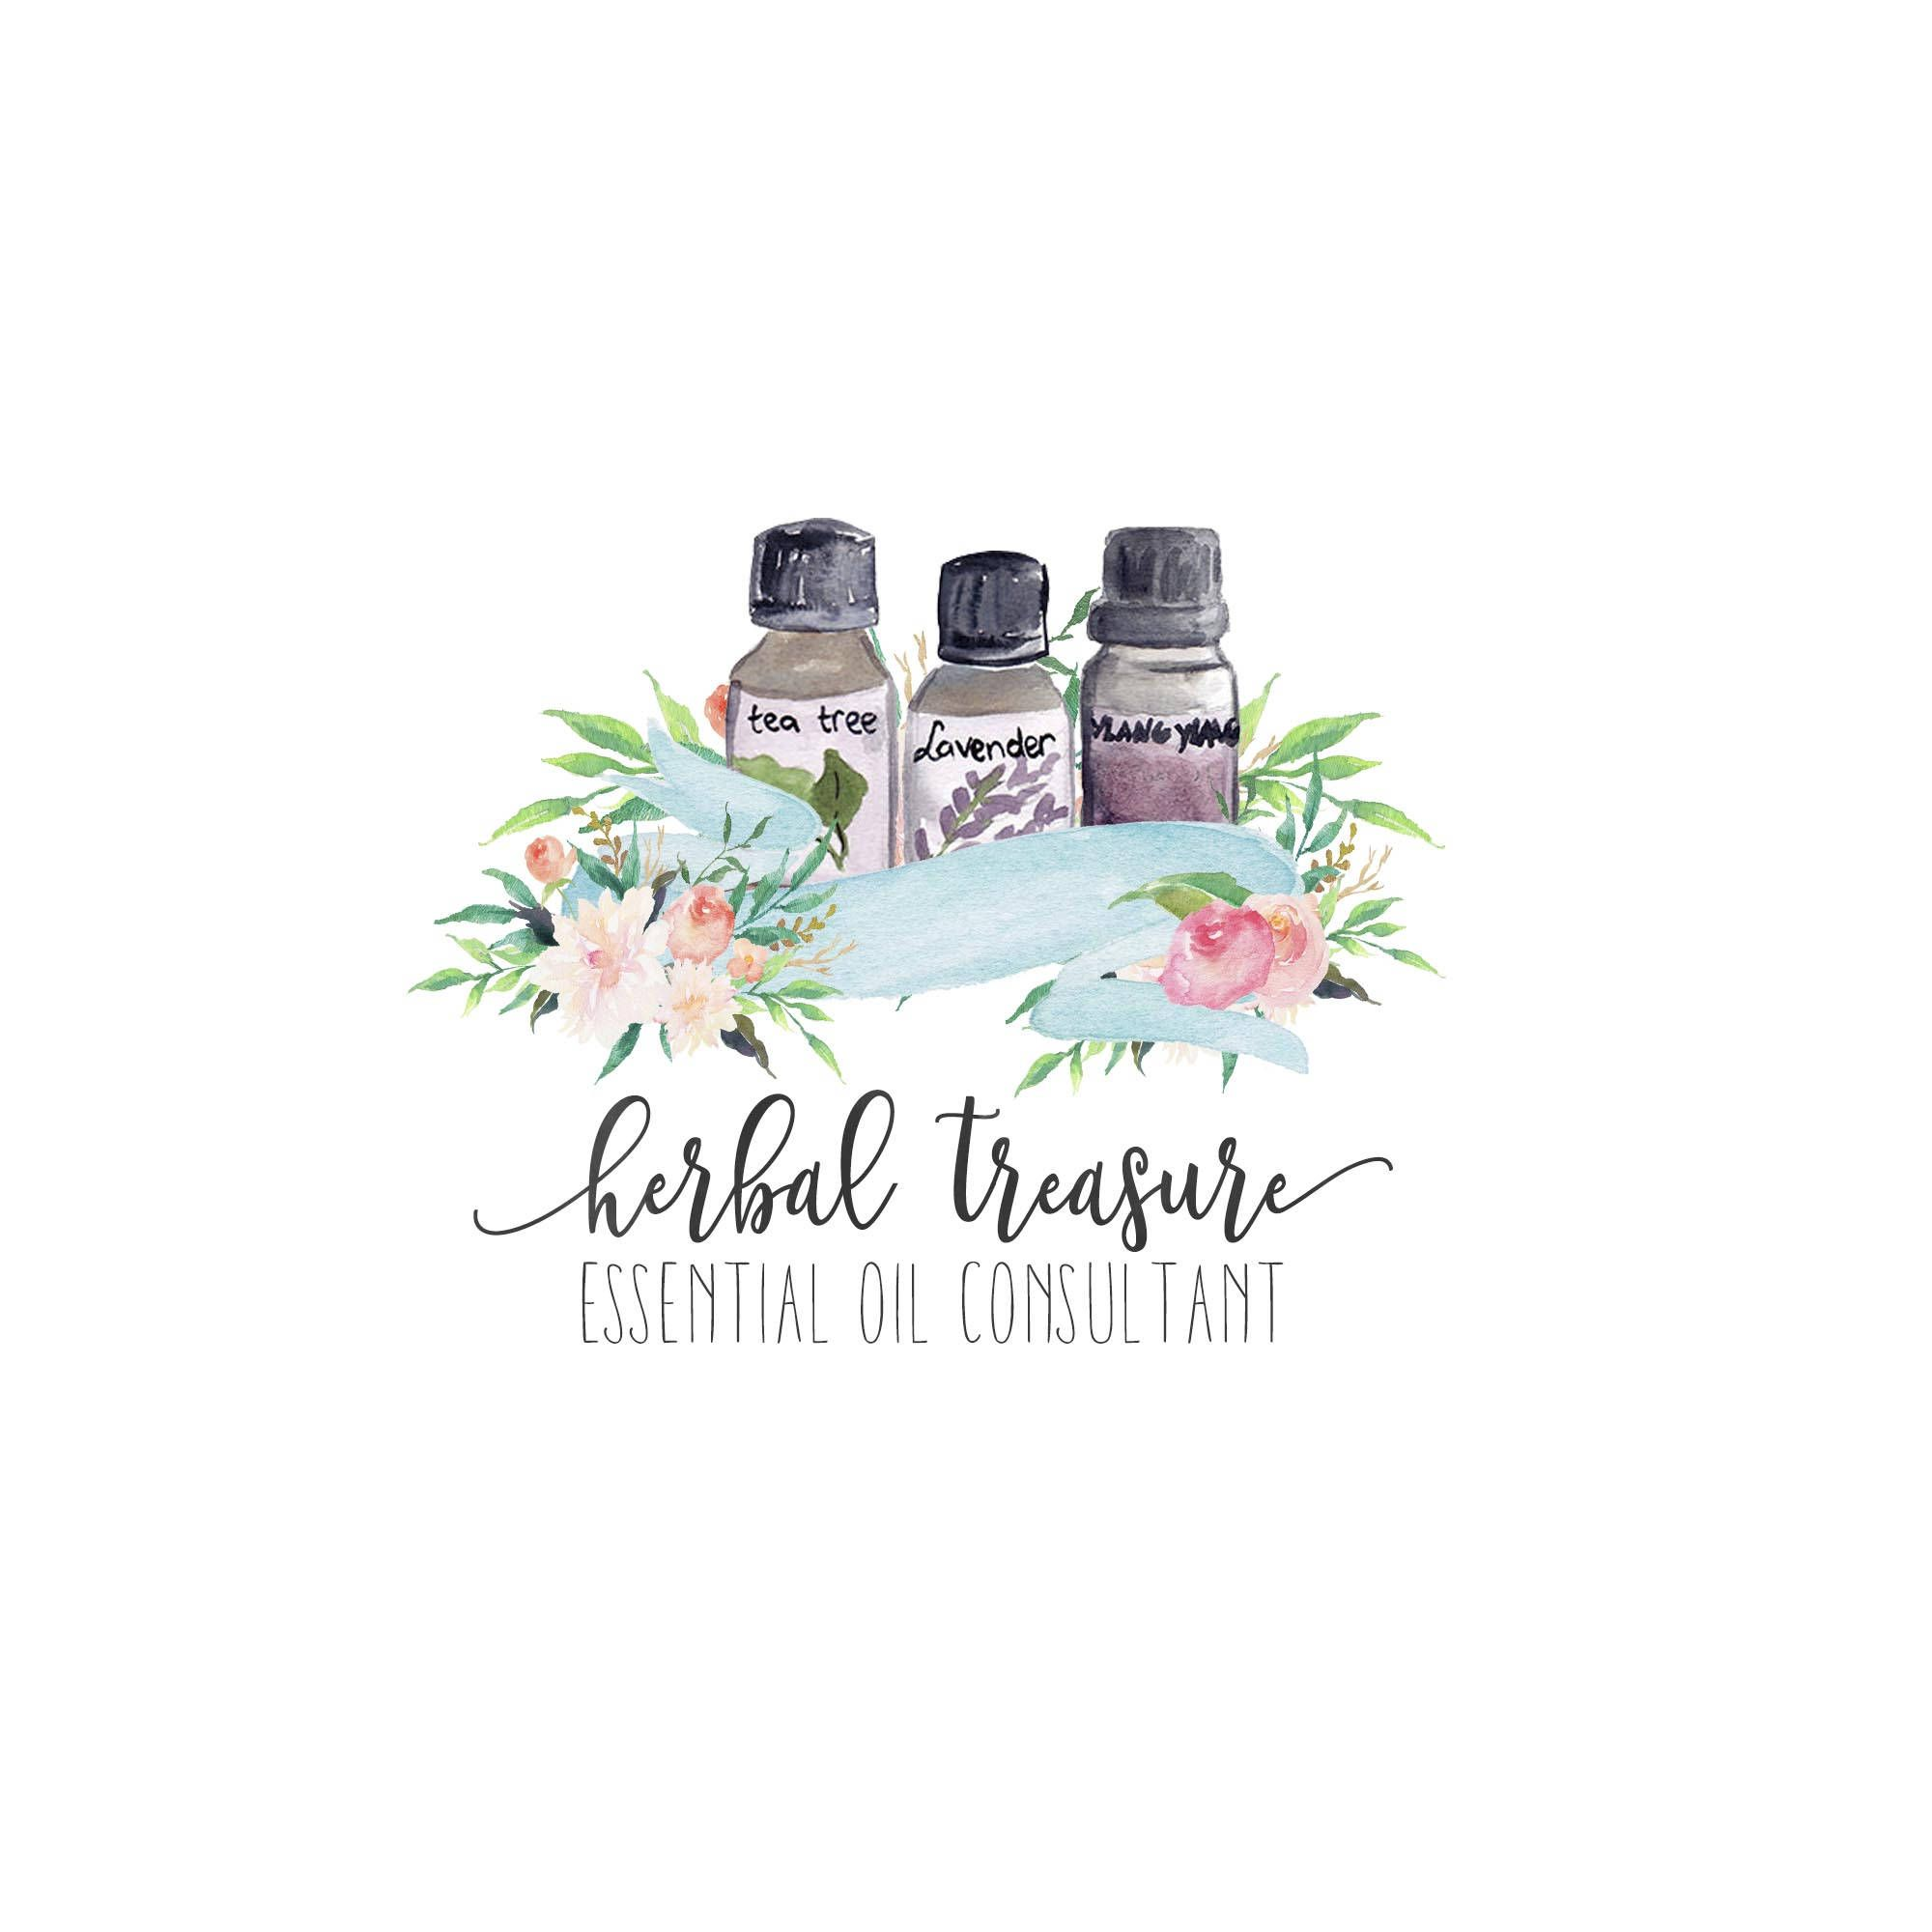 Essential Oil Logo Business Branding Watercolor Fl Consultant